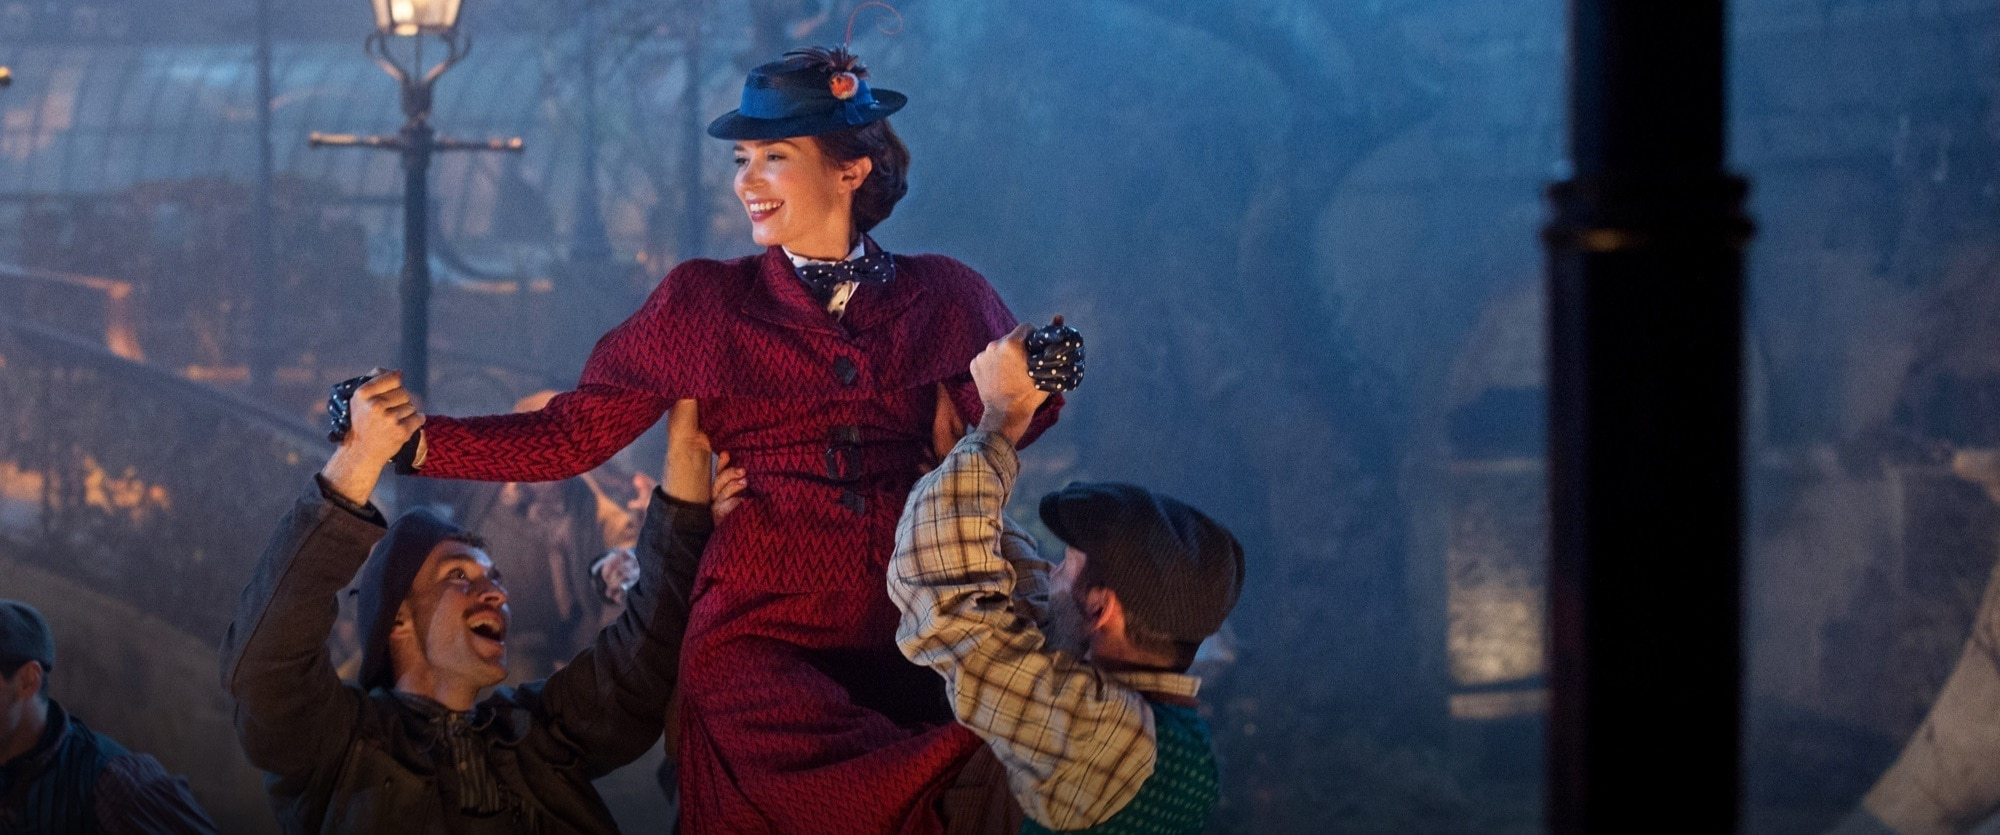 A Magia Por Trás de O Regresso de Mary Poppins | Article